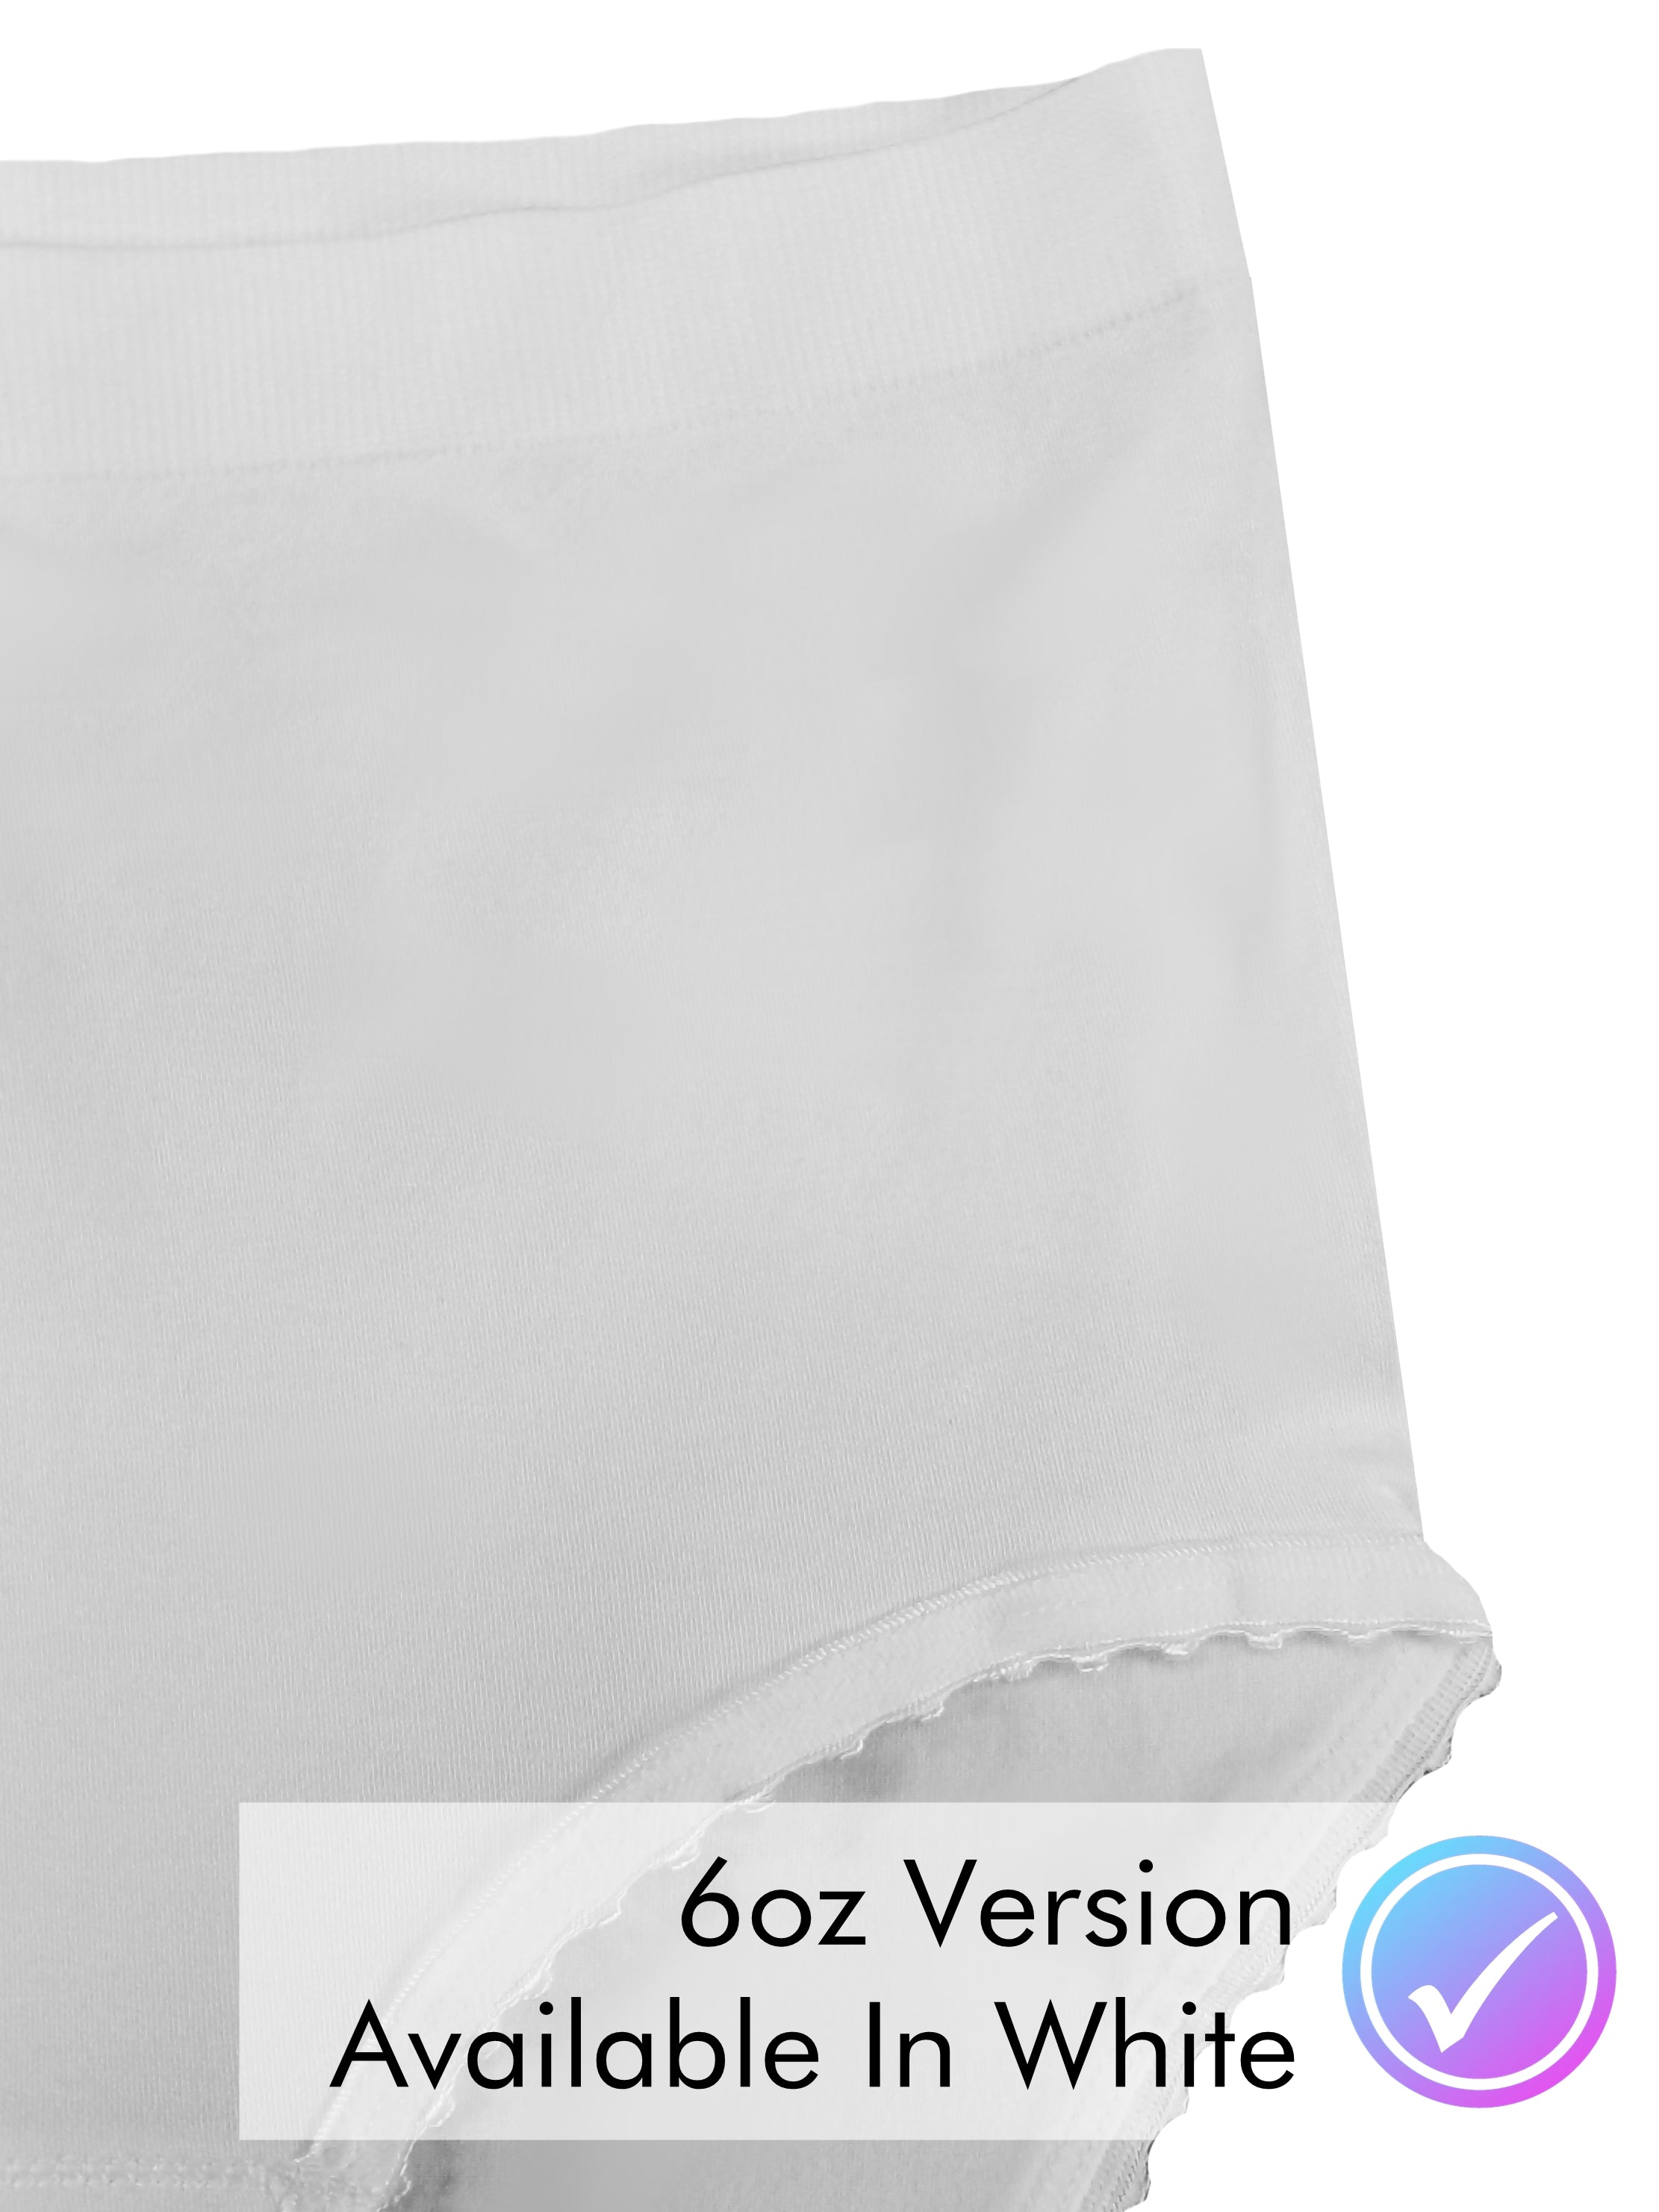 Top 10 Incontinence Underwear For Women Washable of 2021